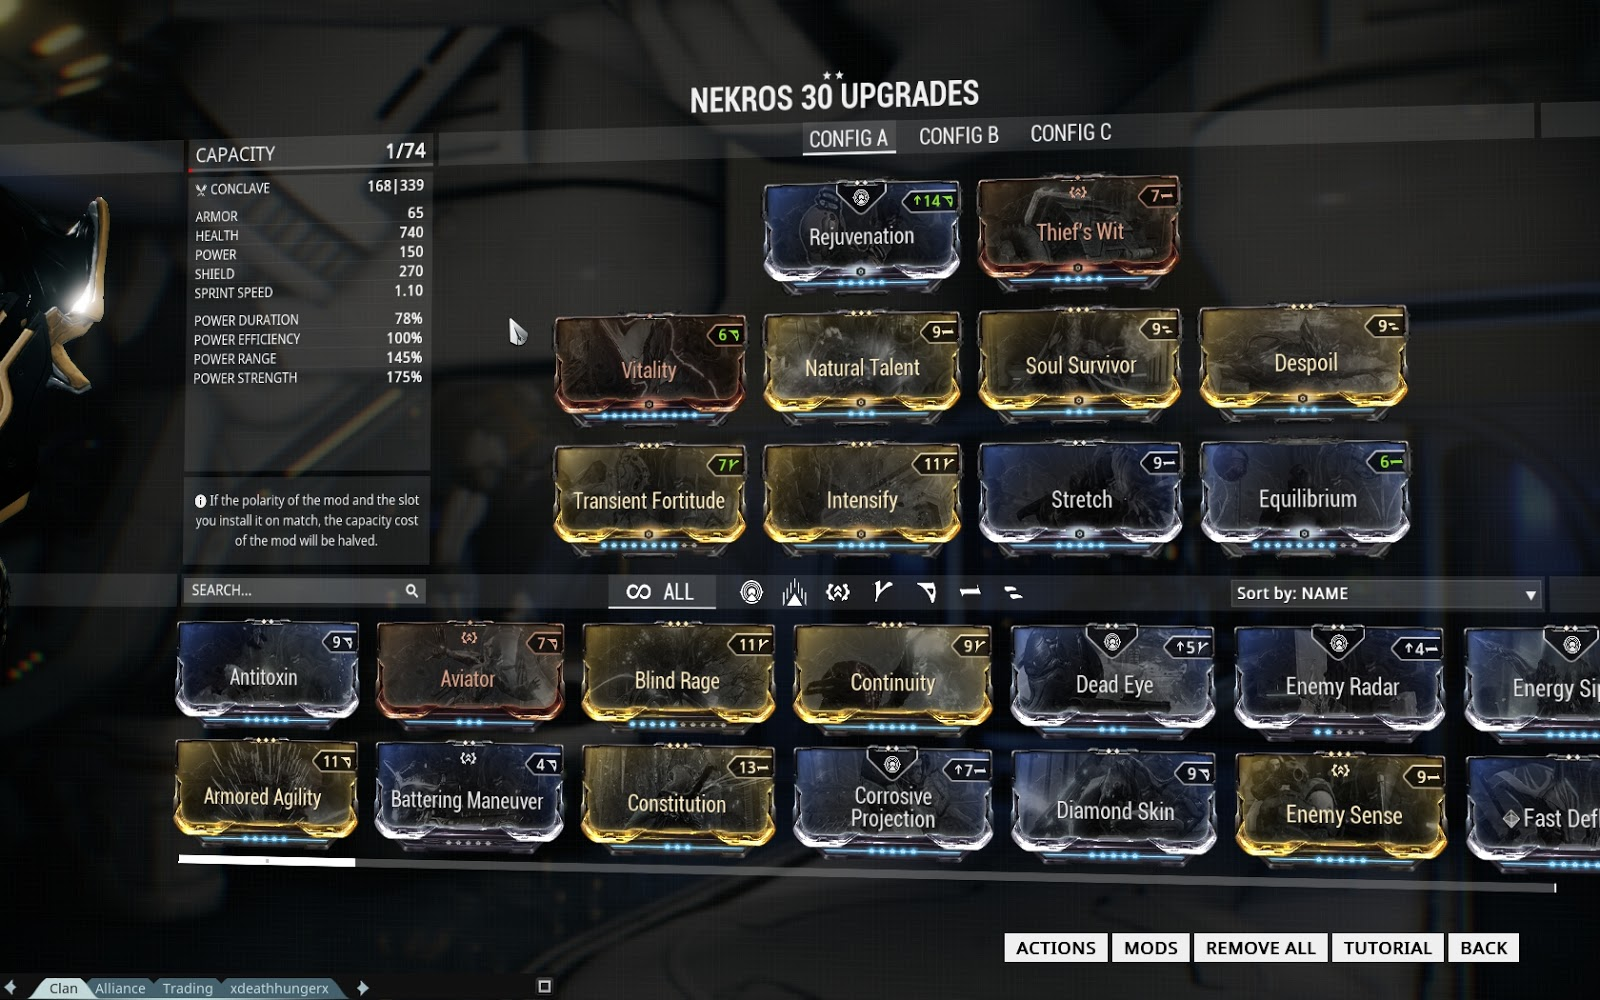 Best Nekros Farming Build Warframe